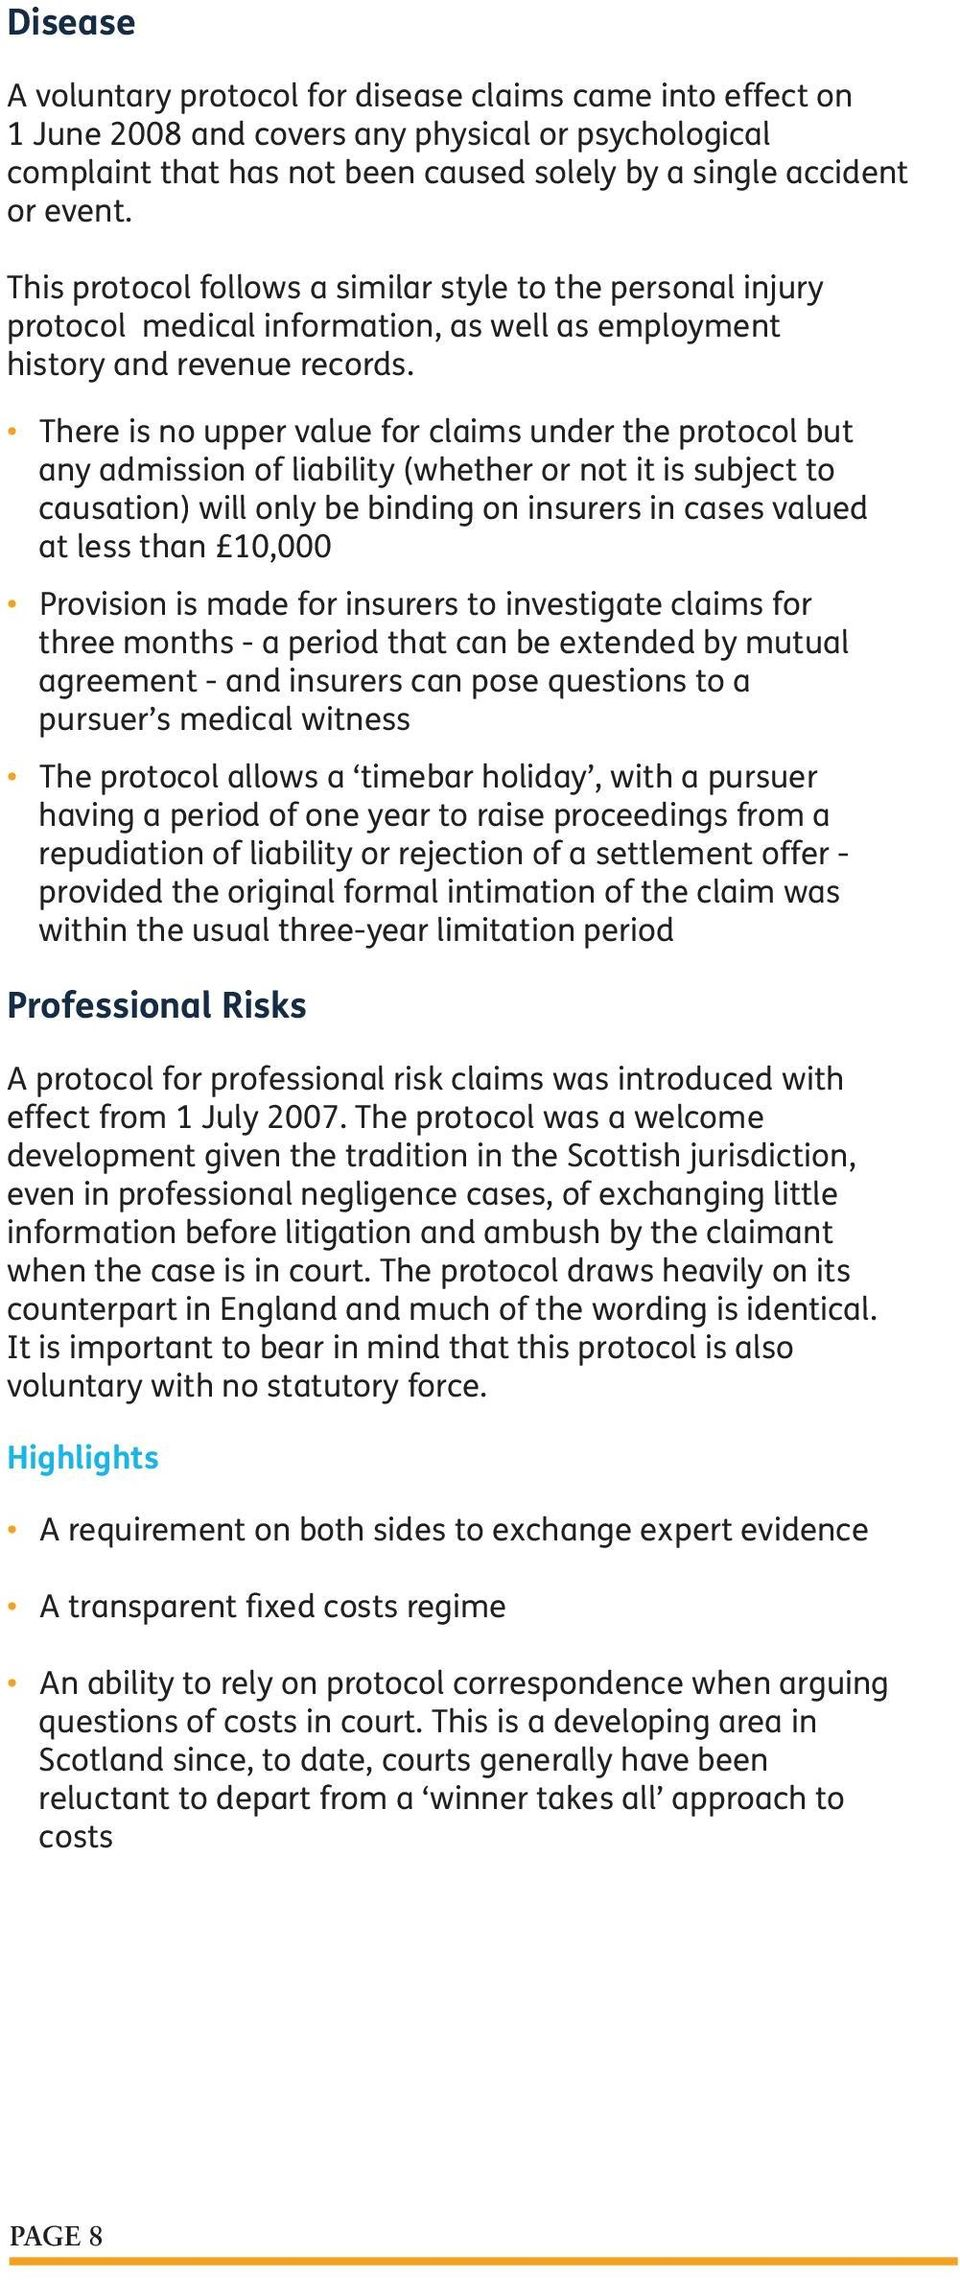 There is no upper value for claims under the protocol but any admission of liability (whether or not it is subject to causation) will only be binding on insurers in cases valued at less than 10,000